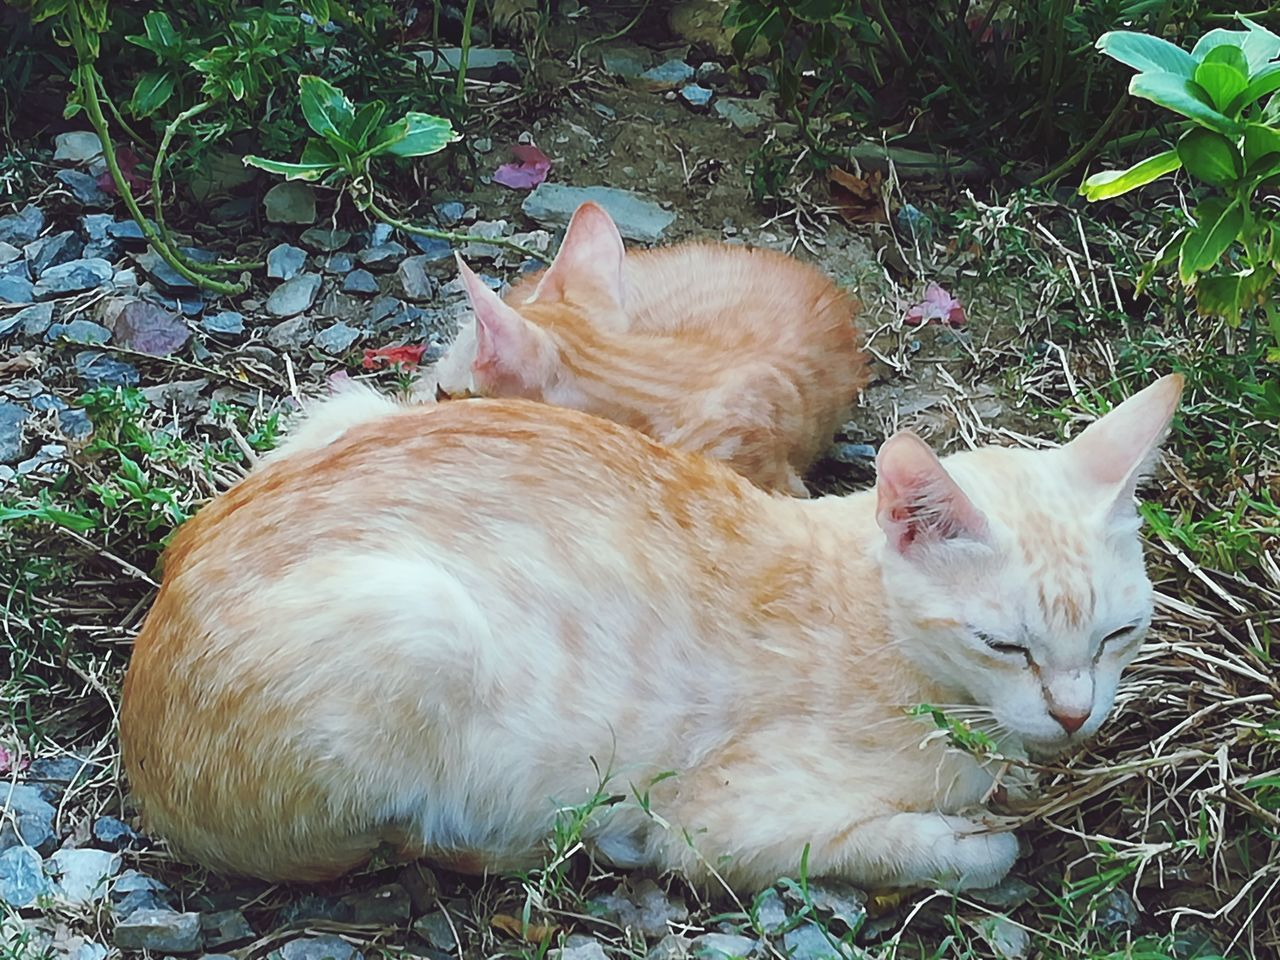 domestic, mammal, pets, domestic animals, cat, domestic cat, feline, animal, animal themes, vertebrate, field, relaxation, land, one animal, no people, nature, plant, resting, day, grass, outdoors, whisker, ginger cat